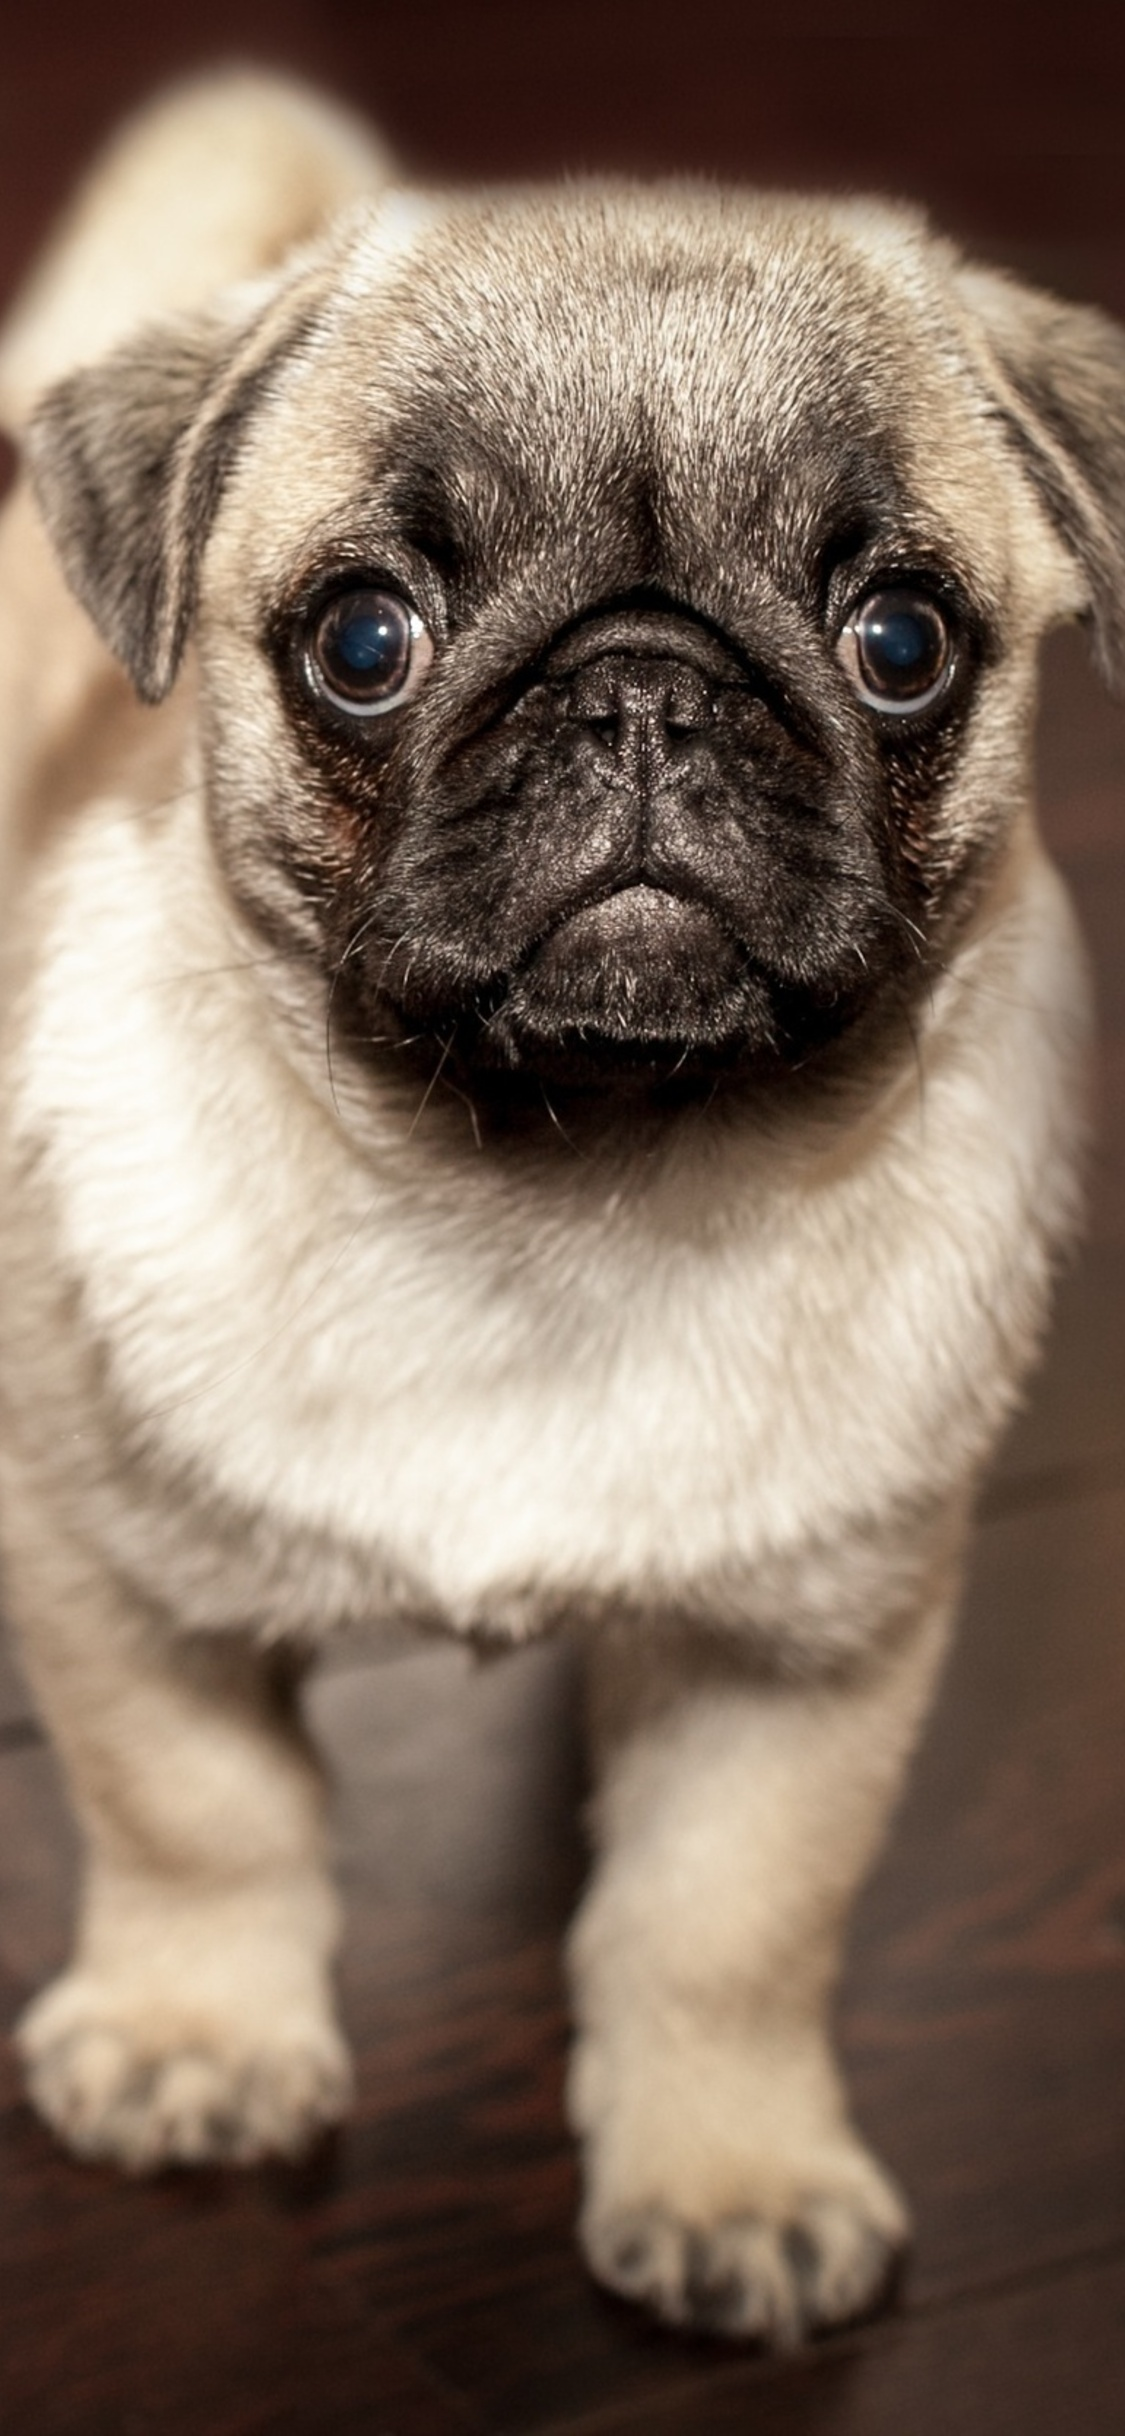 1125x2436 Pug Puppy Iphone Xs Iphone 10 Iphone X Hd 4k Wallpapers Images Backgrounds Photos And Pictures